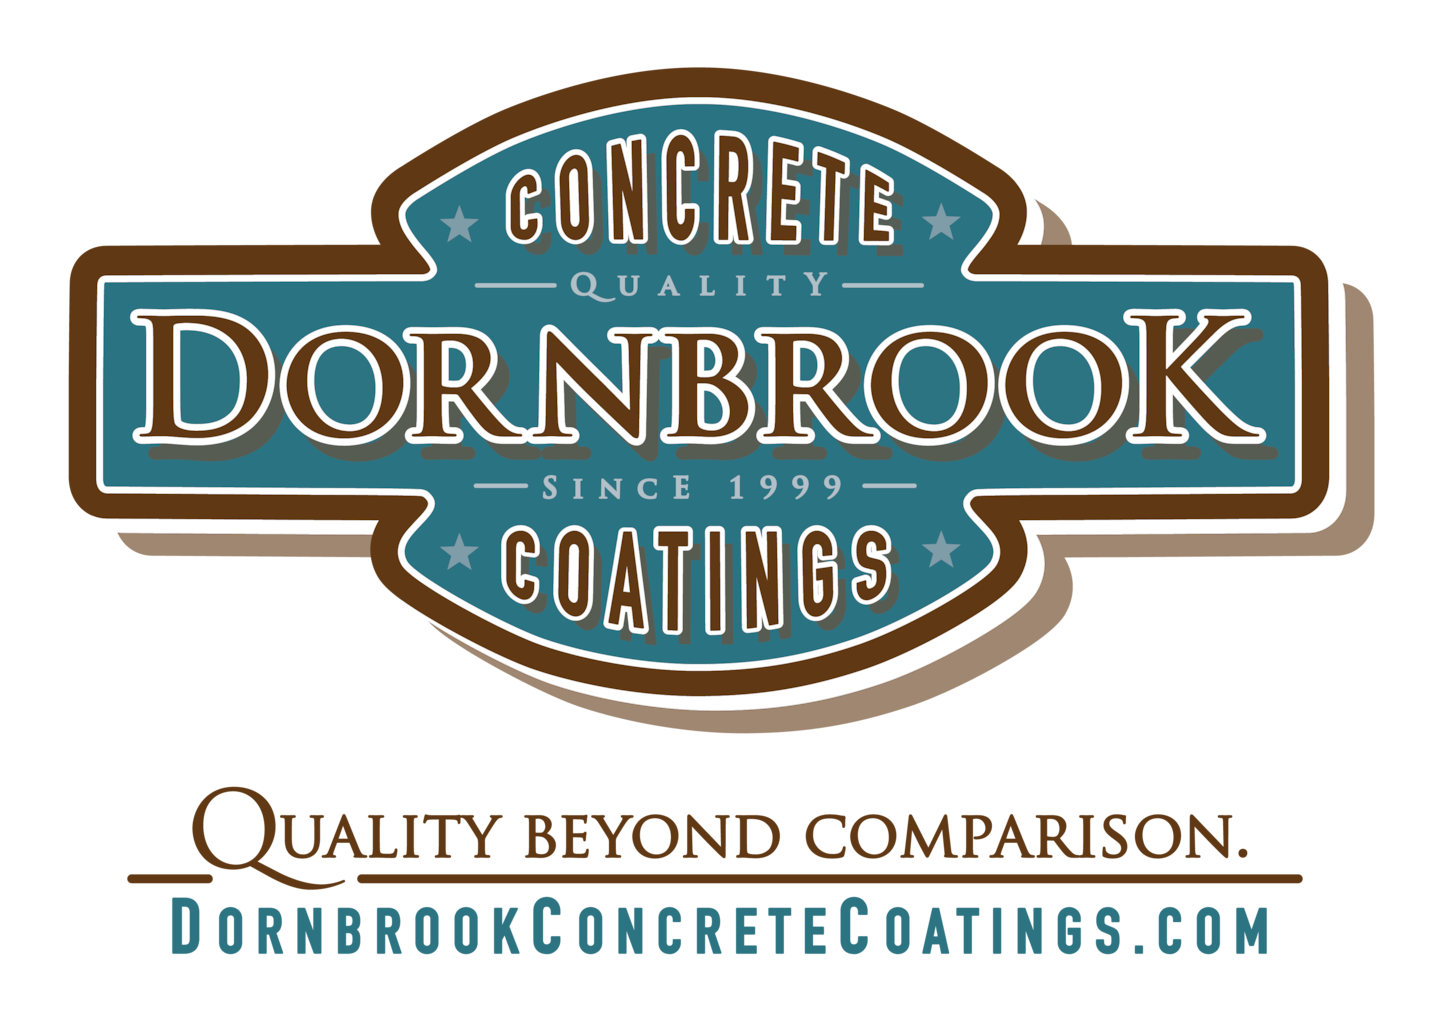 Dornbrook-Concrete-Coatings